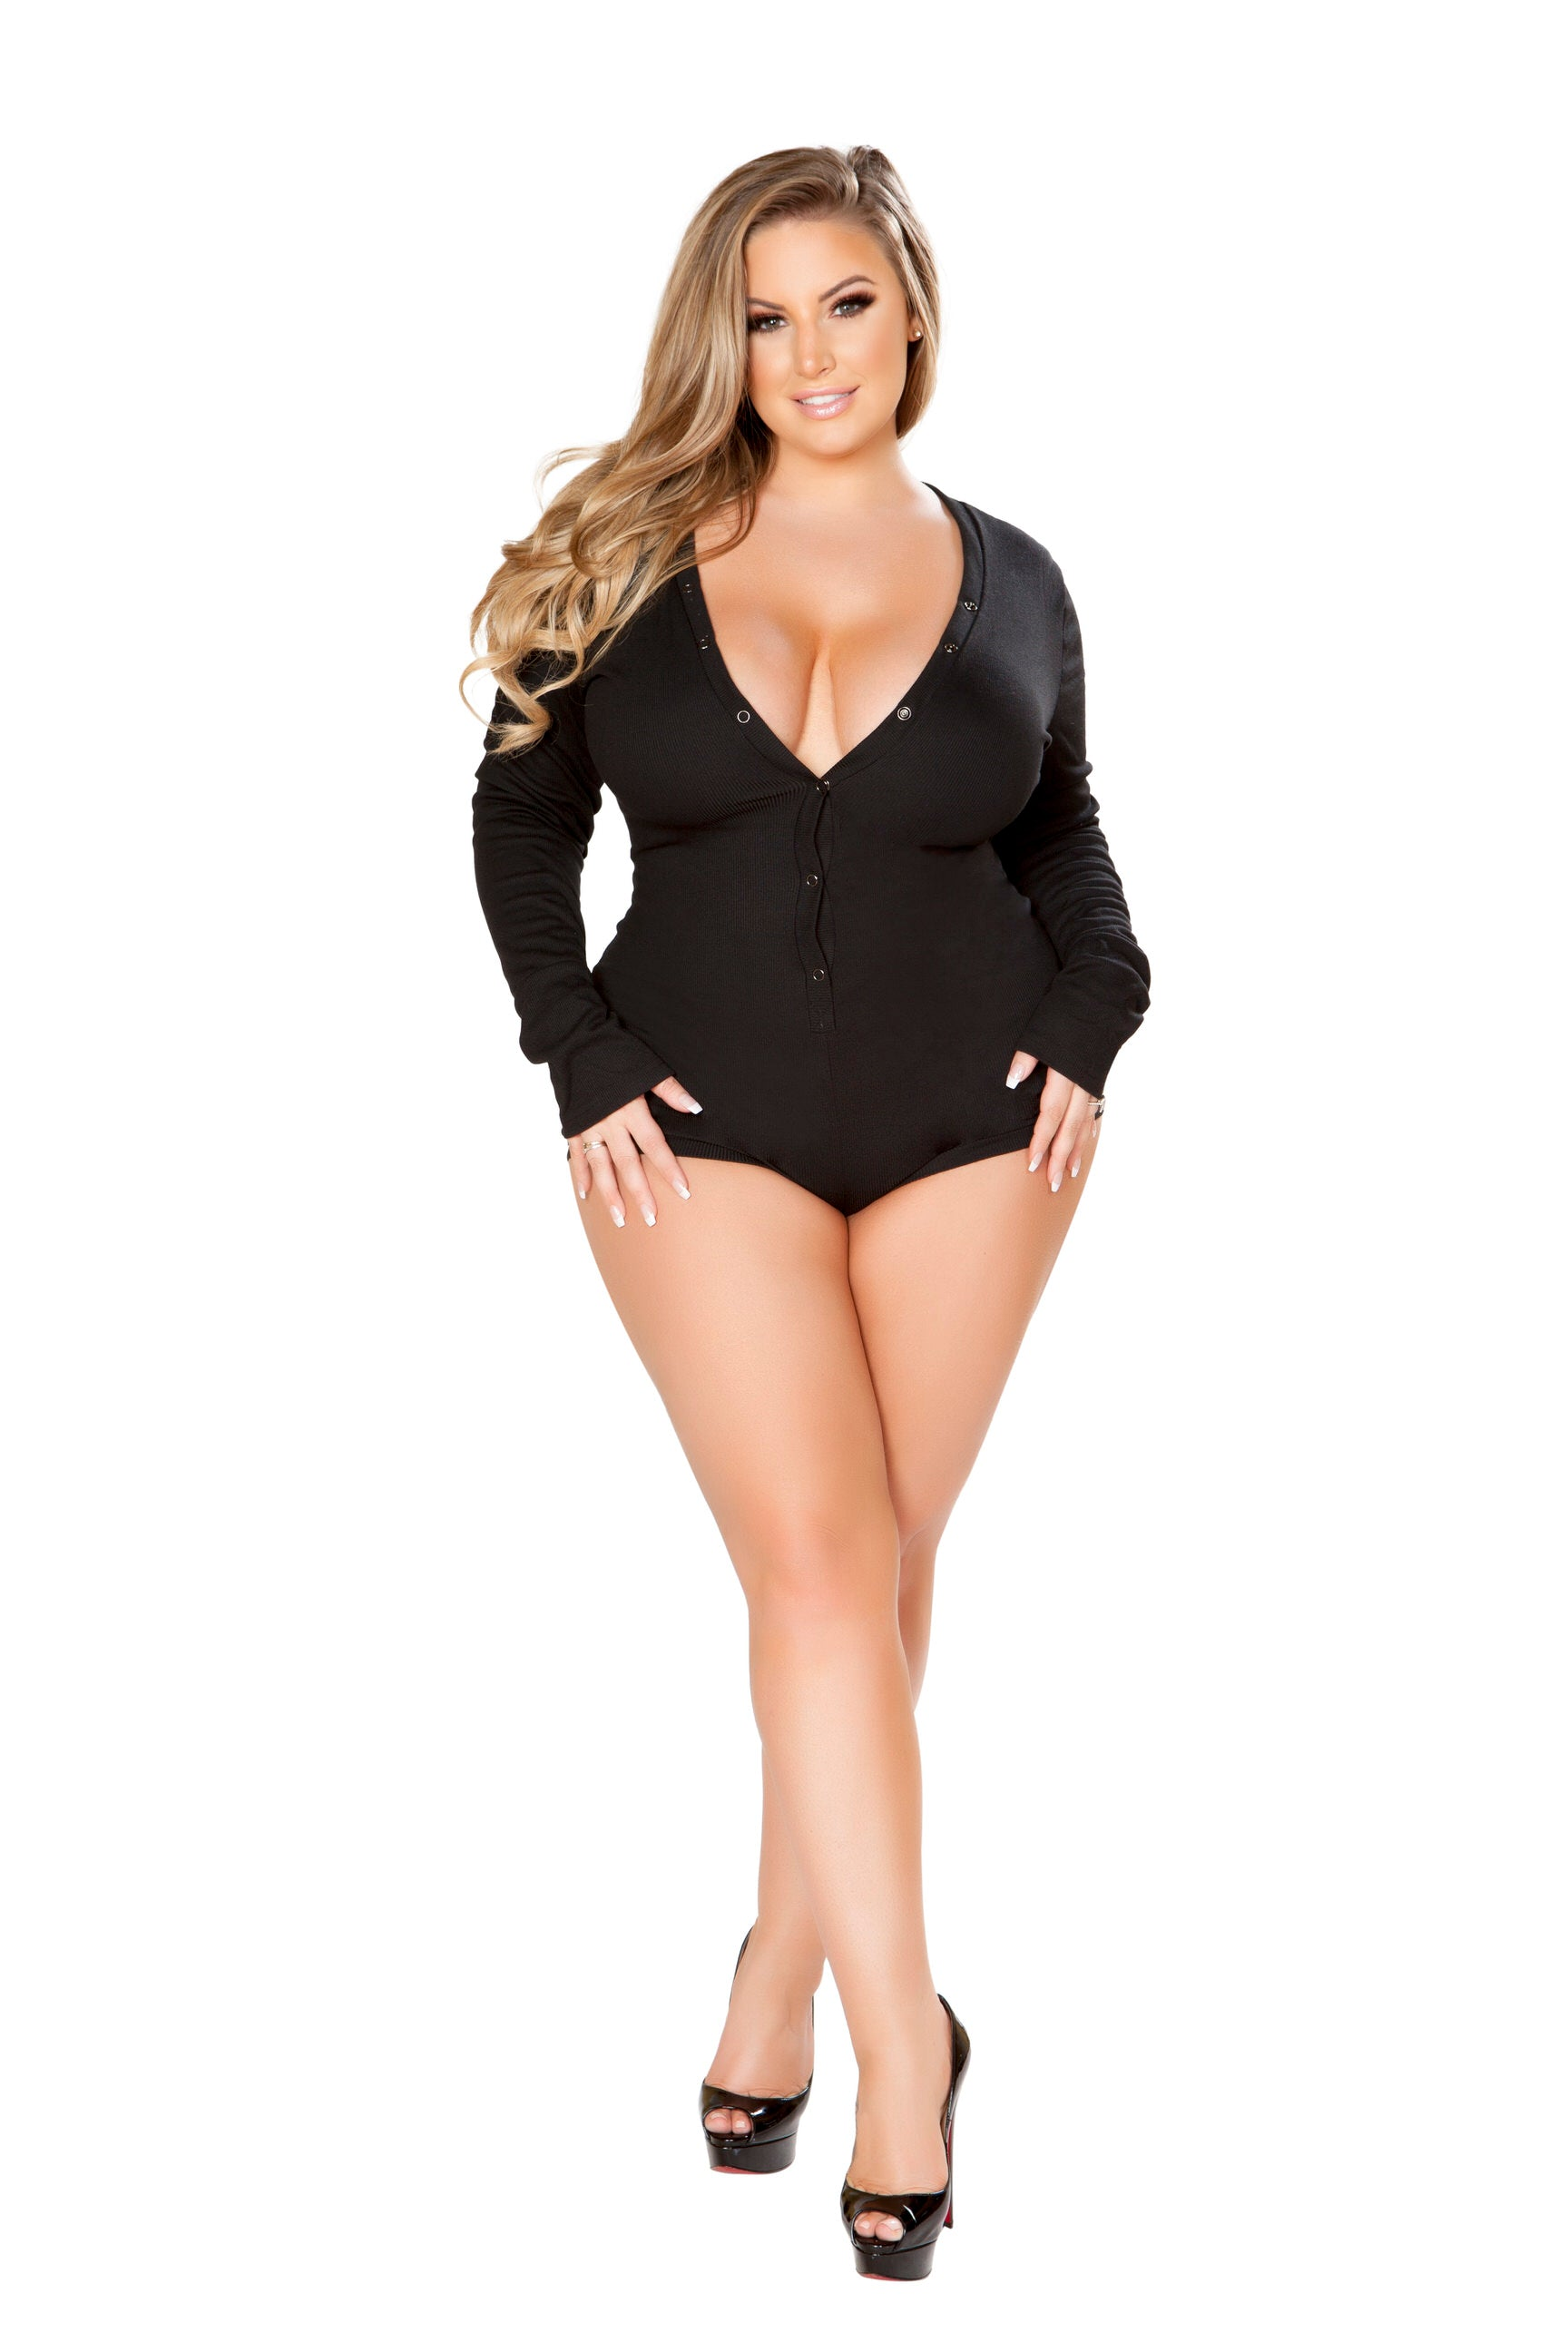 LI211 - Cozy and Comfy Sweater Romper ${description} | Roma Costume and Roma Confidential wholesale manufacturer of Women Apparel bulk world wide wholesale and world wide drop ship services for Adult Halloween Costumes, Sexy and Elegant Lingerie, Rave Clothing, Club wear, and Christmas Costumes. lingerie, Christmas, Roma Costume, Inc., Roma Costume, Roma Confidential, Wholesale clothing, drop ship, drop ship service, Wholesale Lingerie, Wholesale Adult Halloween Costumes, Rave Clothing, EDM Clothing, Festival Wear, Christmas Costumes, Clubwear, Club wear.